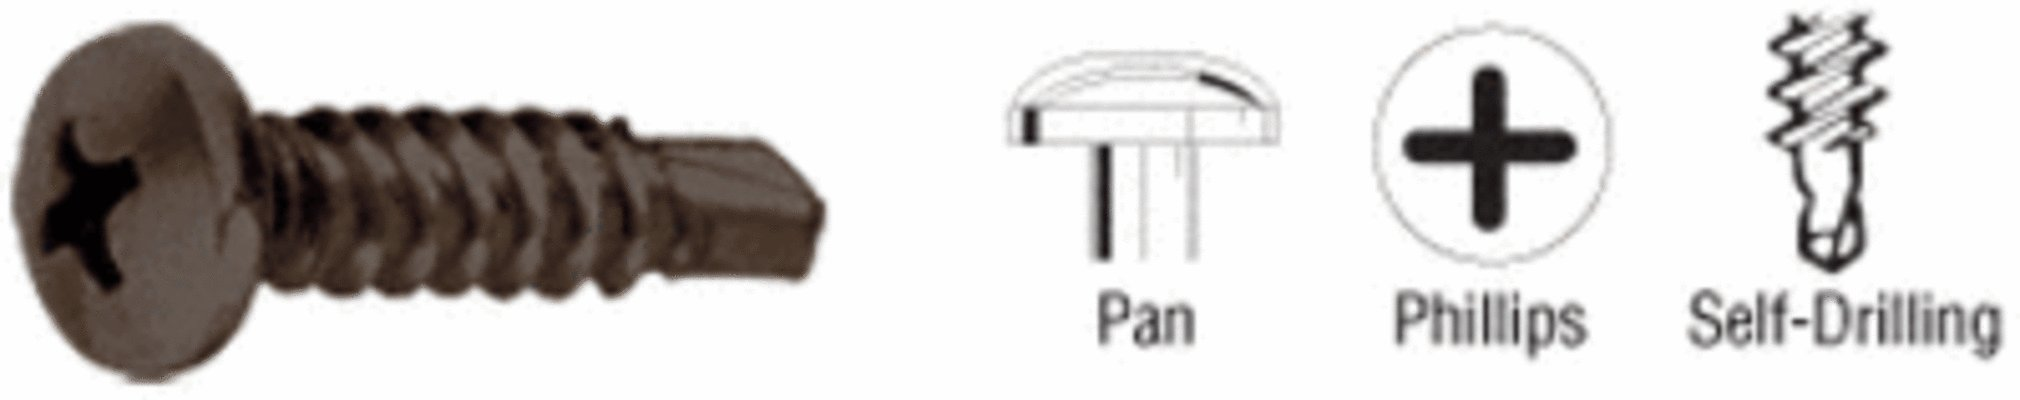 CRL Dark Bronze 8-18 x 3/4'' Self-Drilling Pan Head Phillips Screws Pack of 100 by CR Laurence by CR Laurence